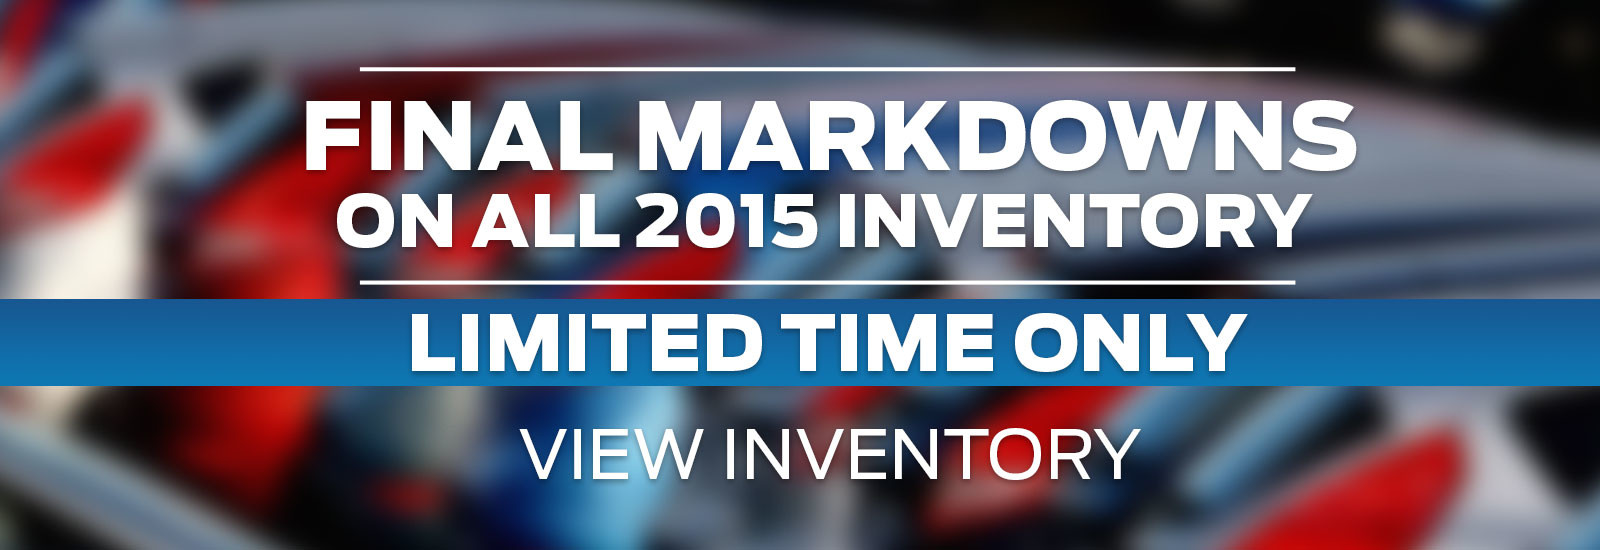 Final Markdown On 2015 Inventory